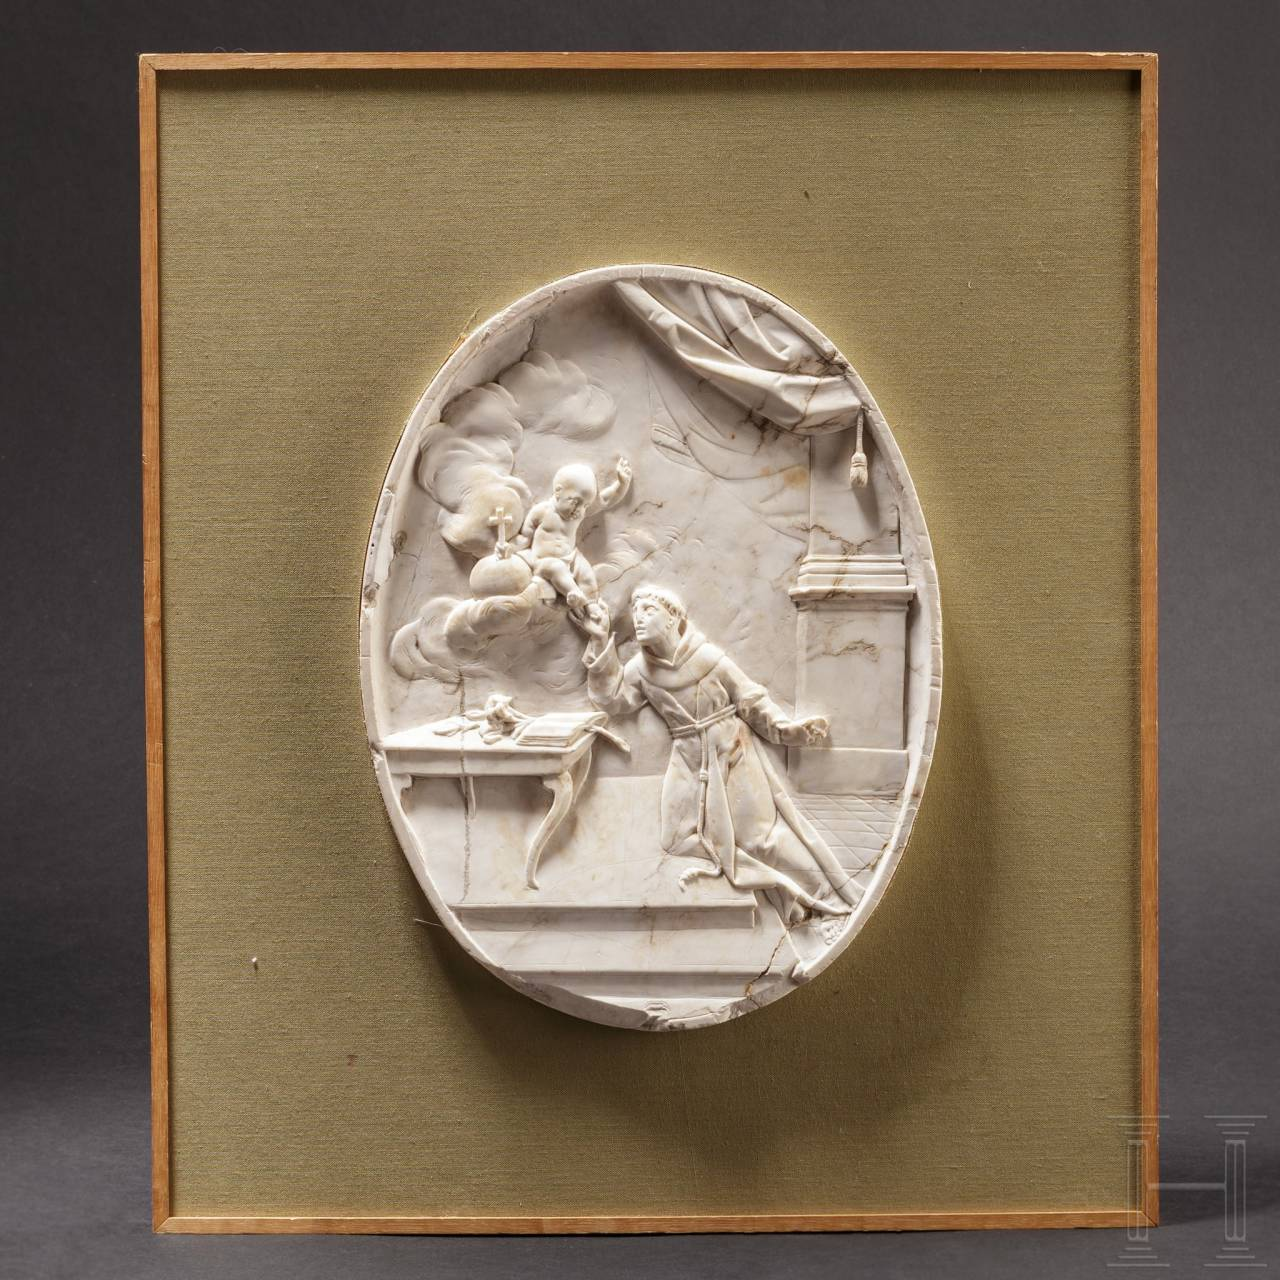 An exquisite Italian marble relief with a depiction of a saint, late 17th century